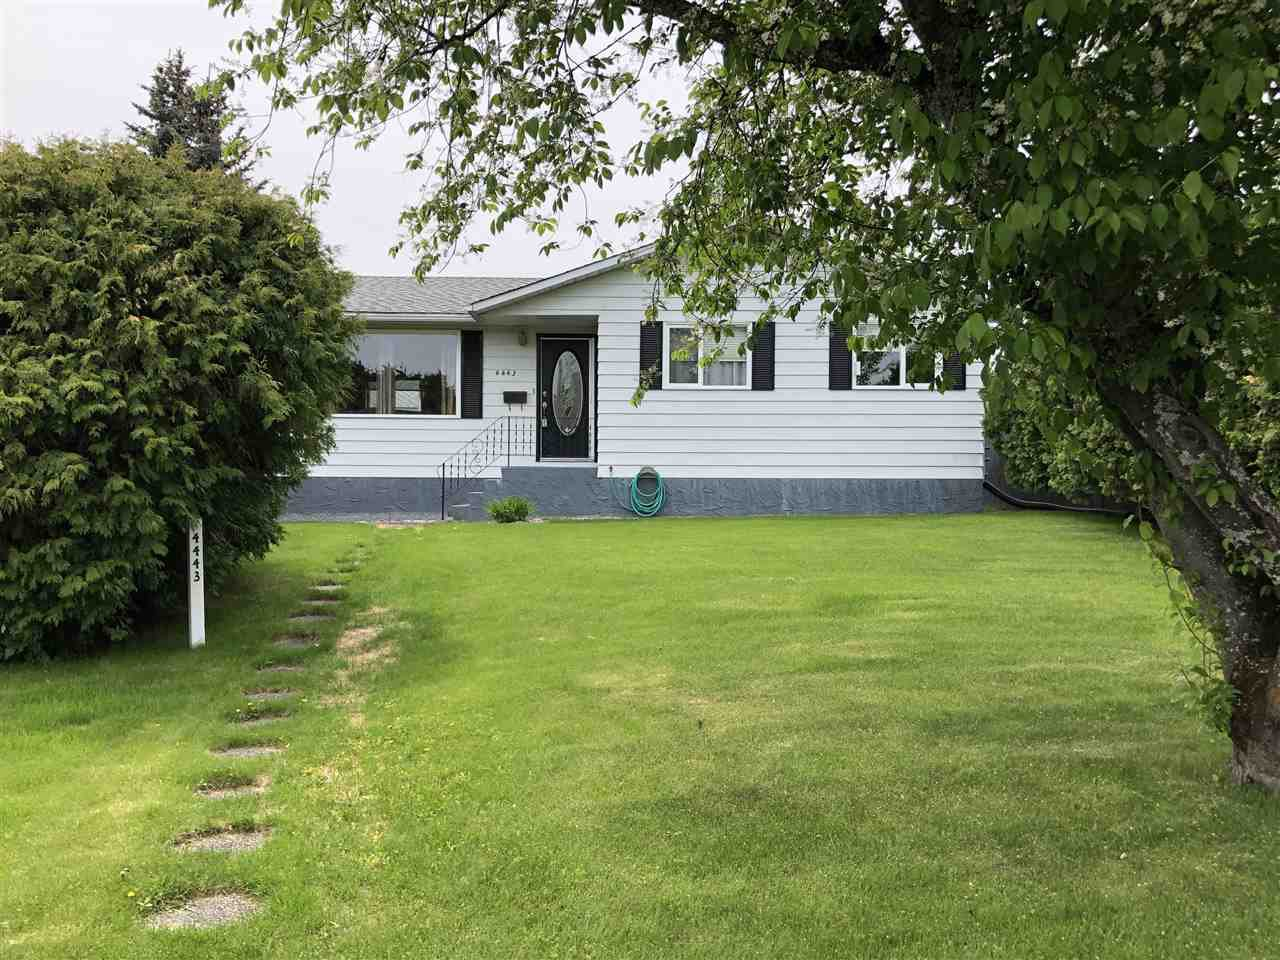 Main Photo: 4443 BAUCH Avenue in Prince George: Heritage House for sale (PG City West (Zone 71))  : MLS®# R2447378